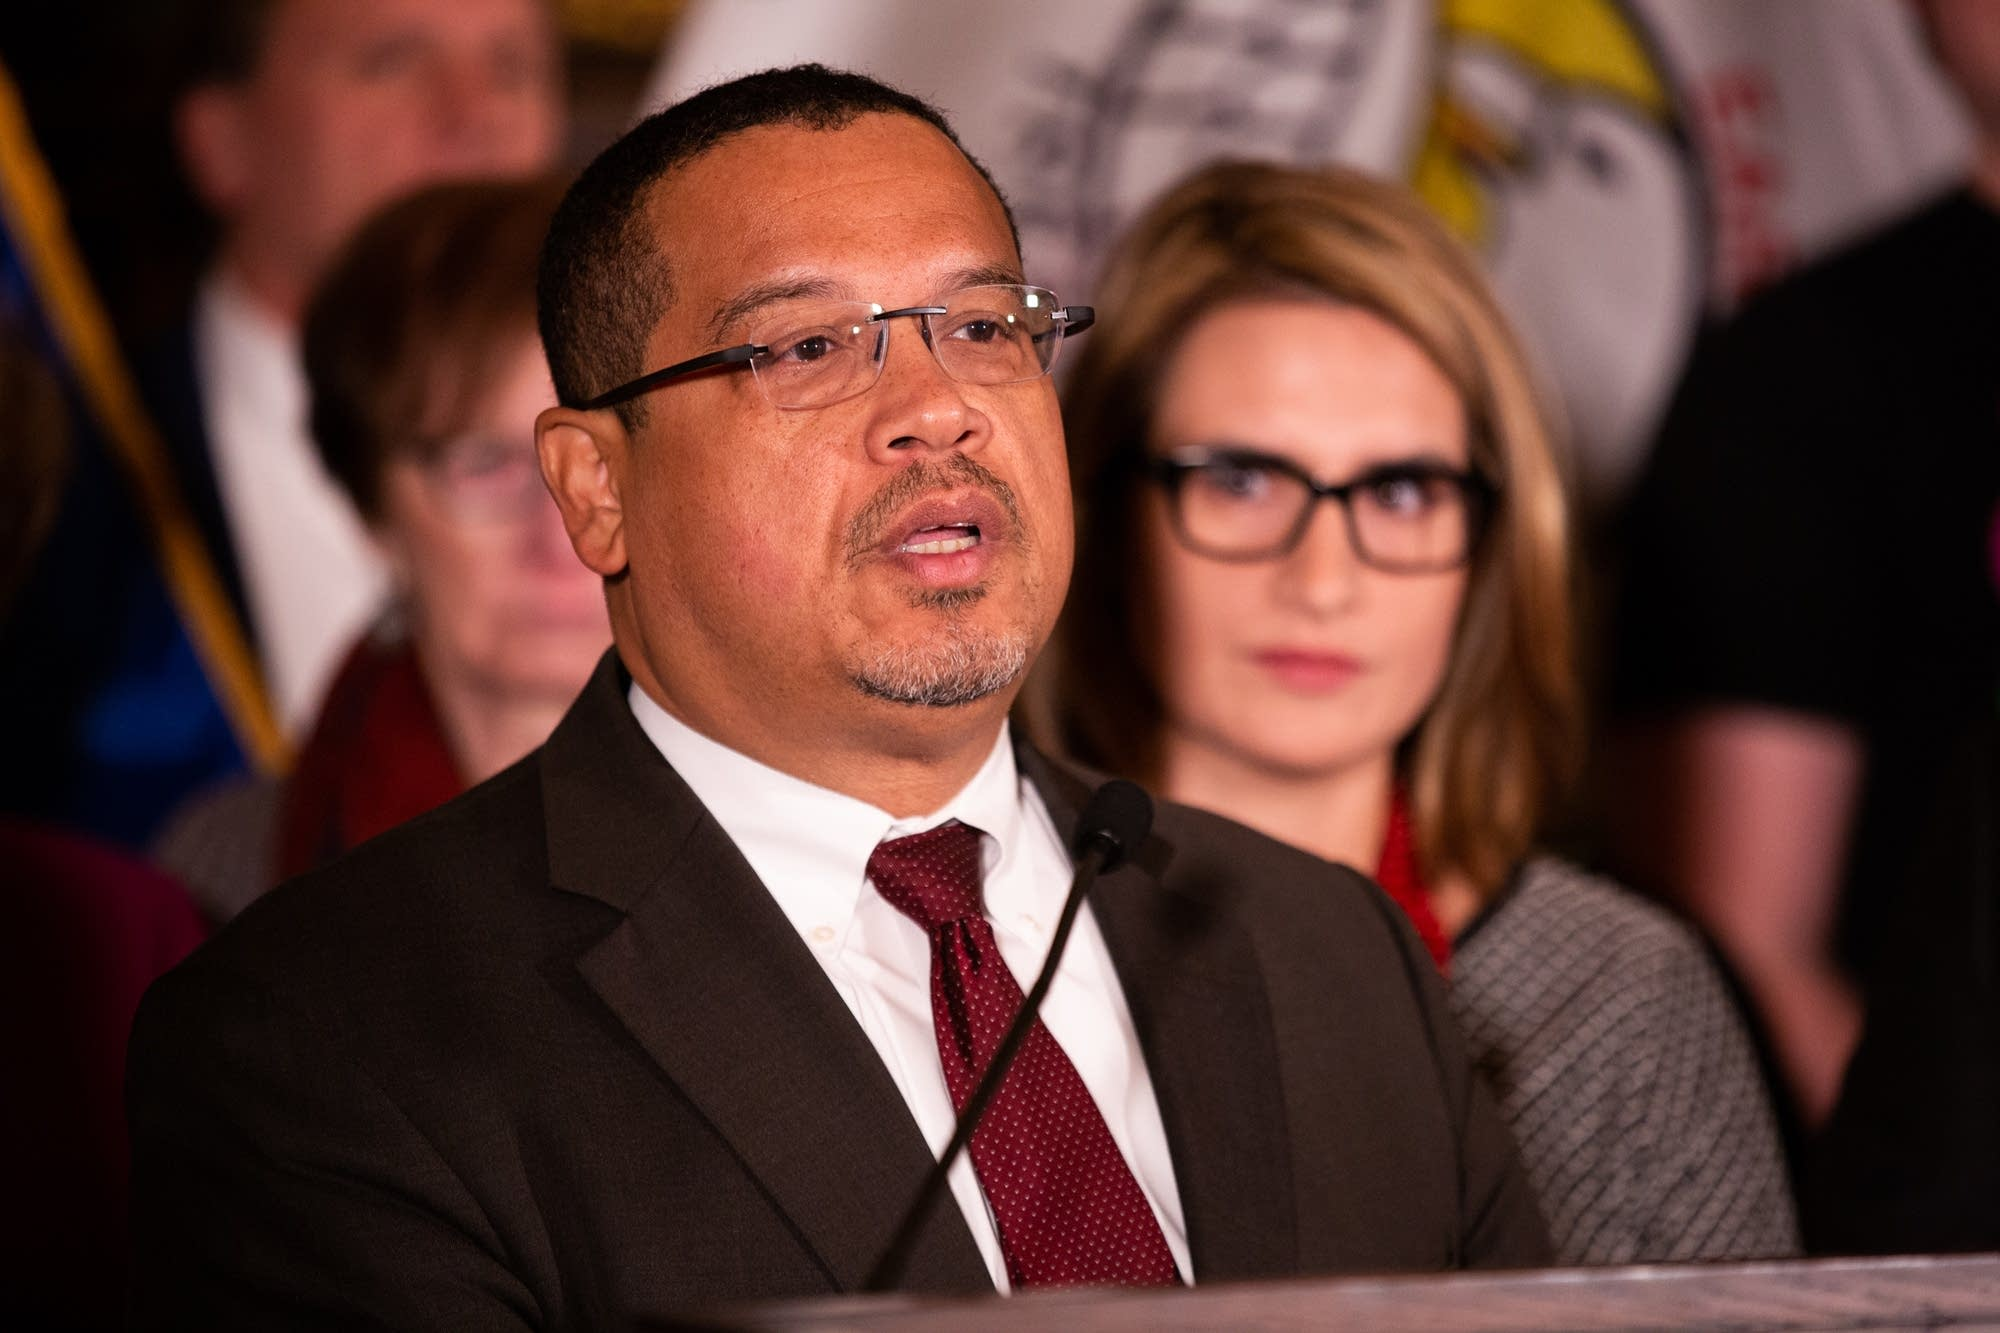 Keith Ellison in January 2019 at the State Capitol.